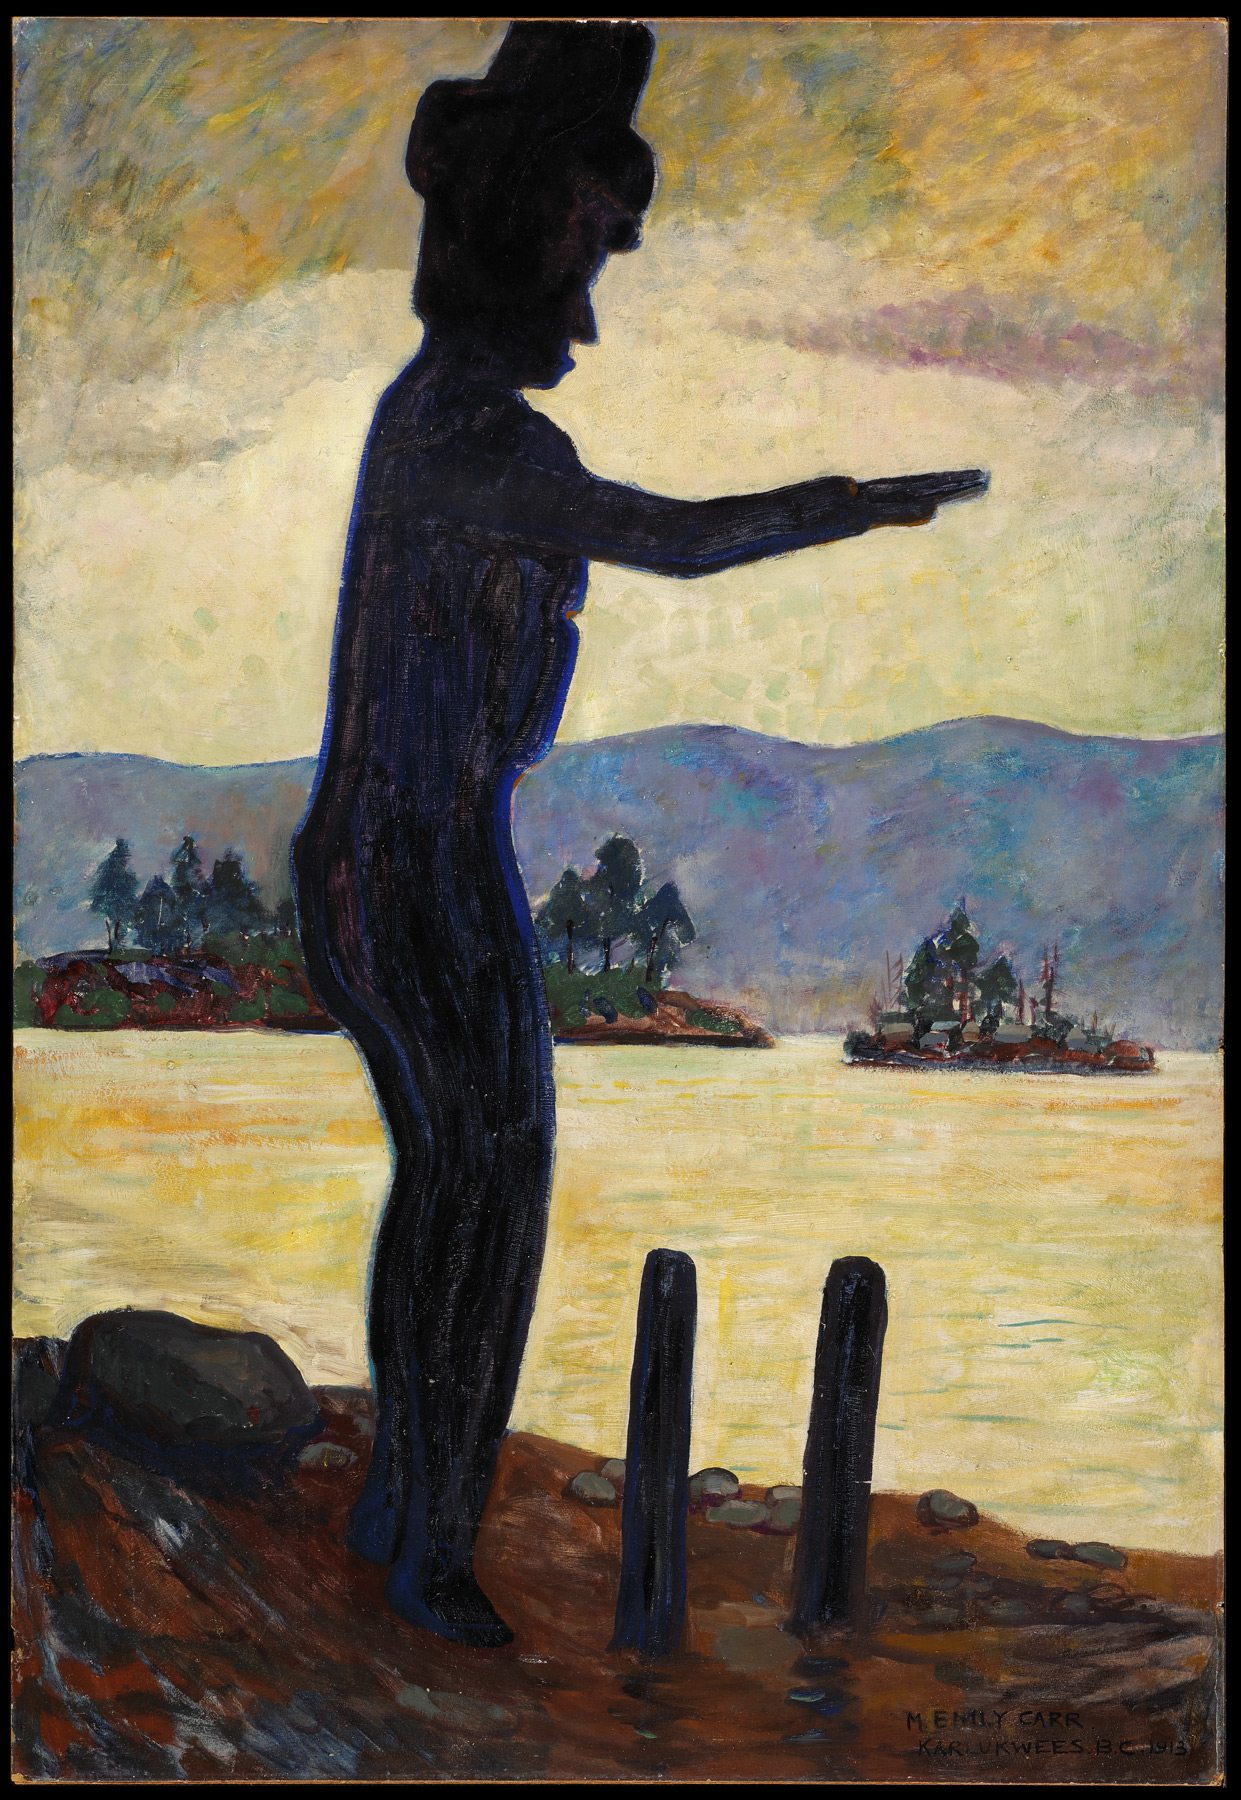 Emily Carr, The Welcome Man, 1913, oil on cardboard, mounted on masonite, 95.3 x 64.8 cm; Gift of Bryan Adams, 2000 National Gallery of Canada, Ottawa. Photo: NGC